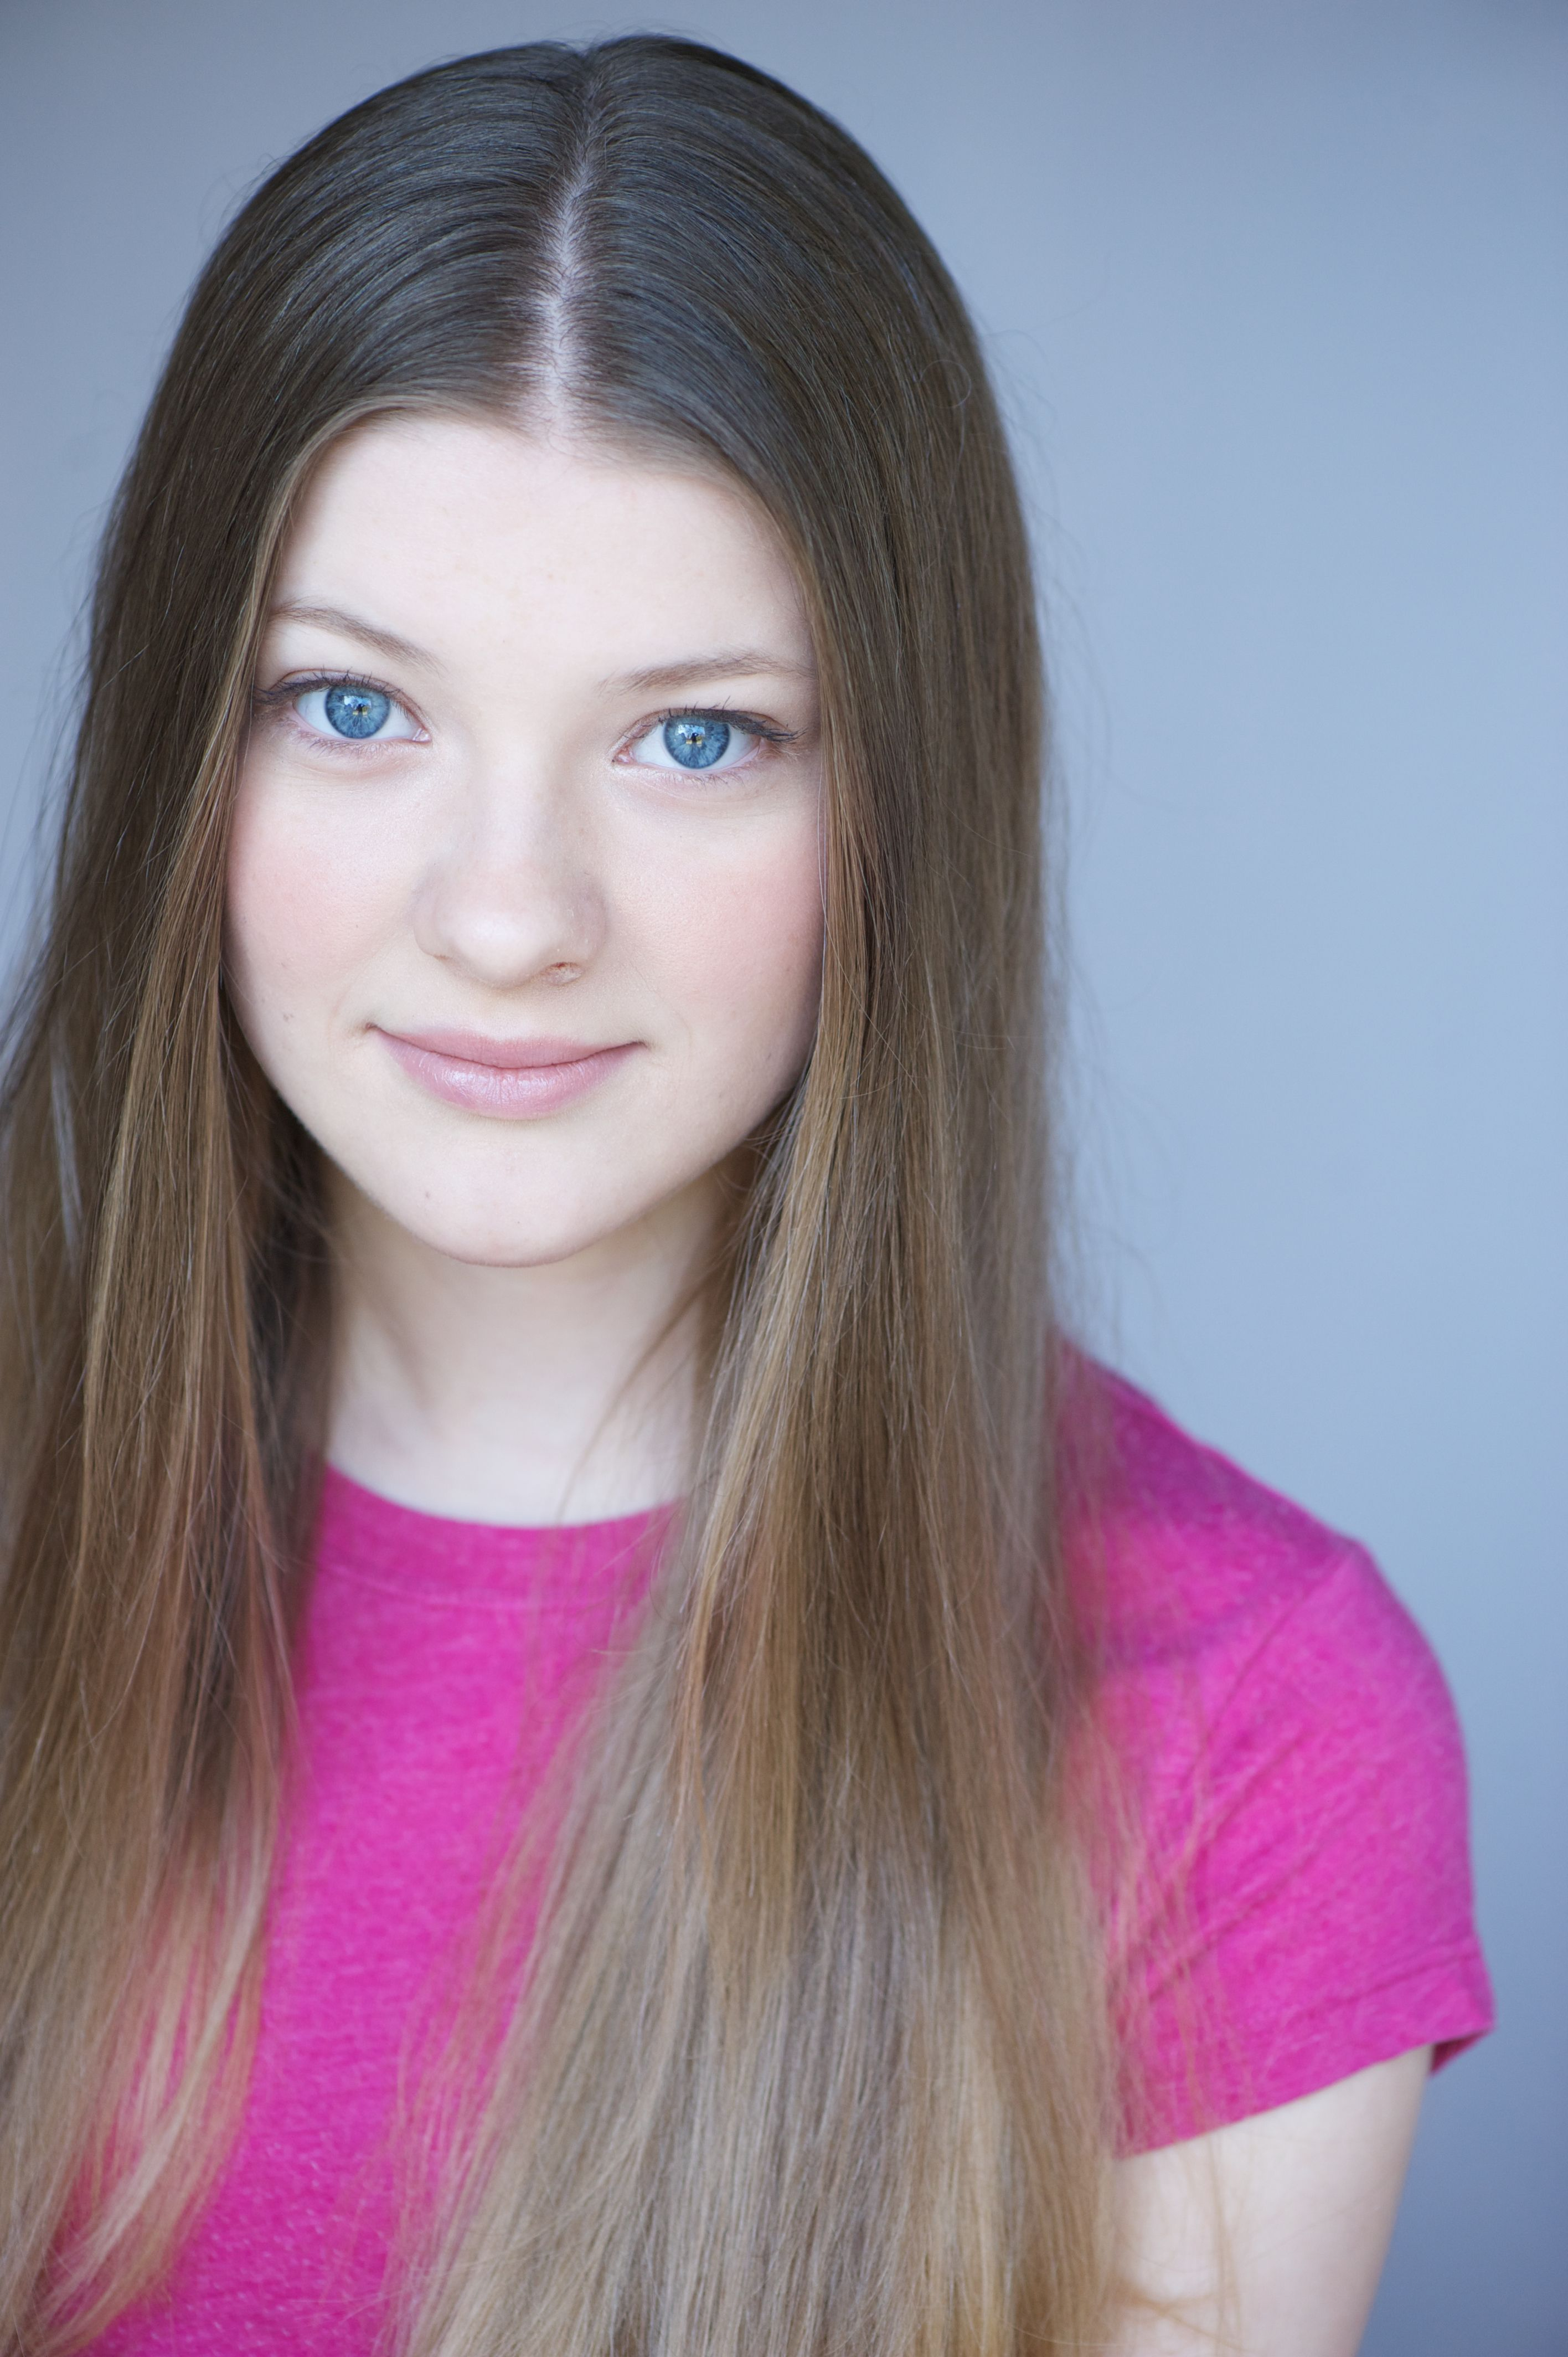 Christine galyean is a 16 year old actress with stunt